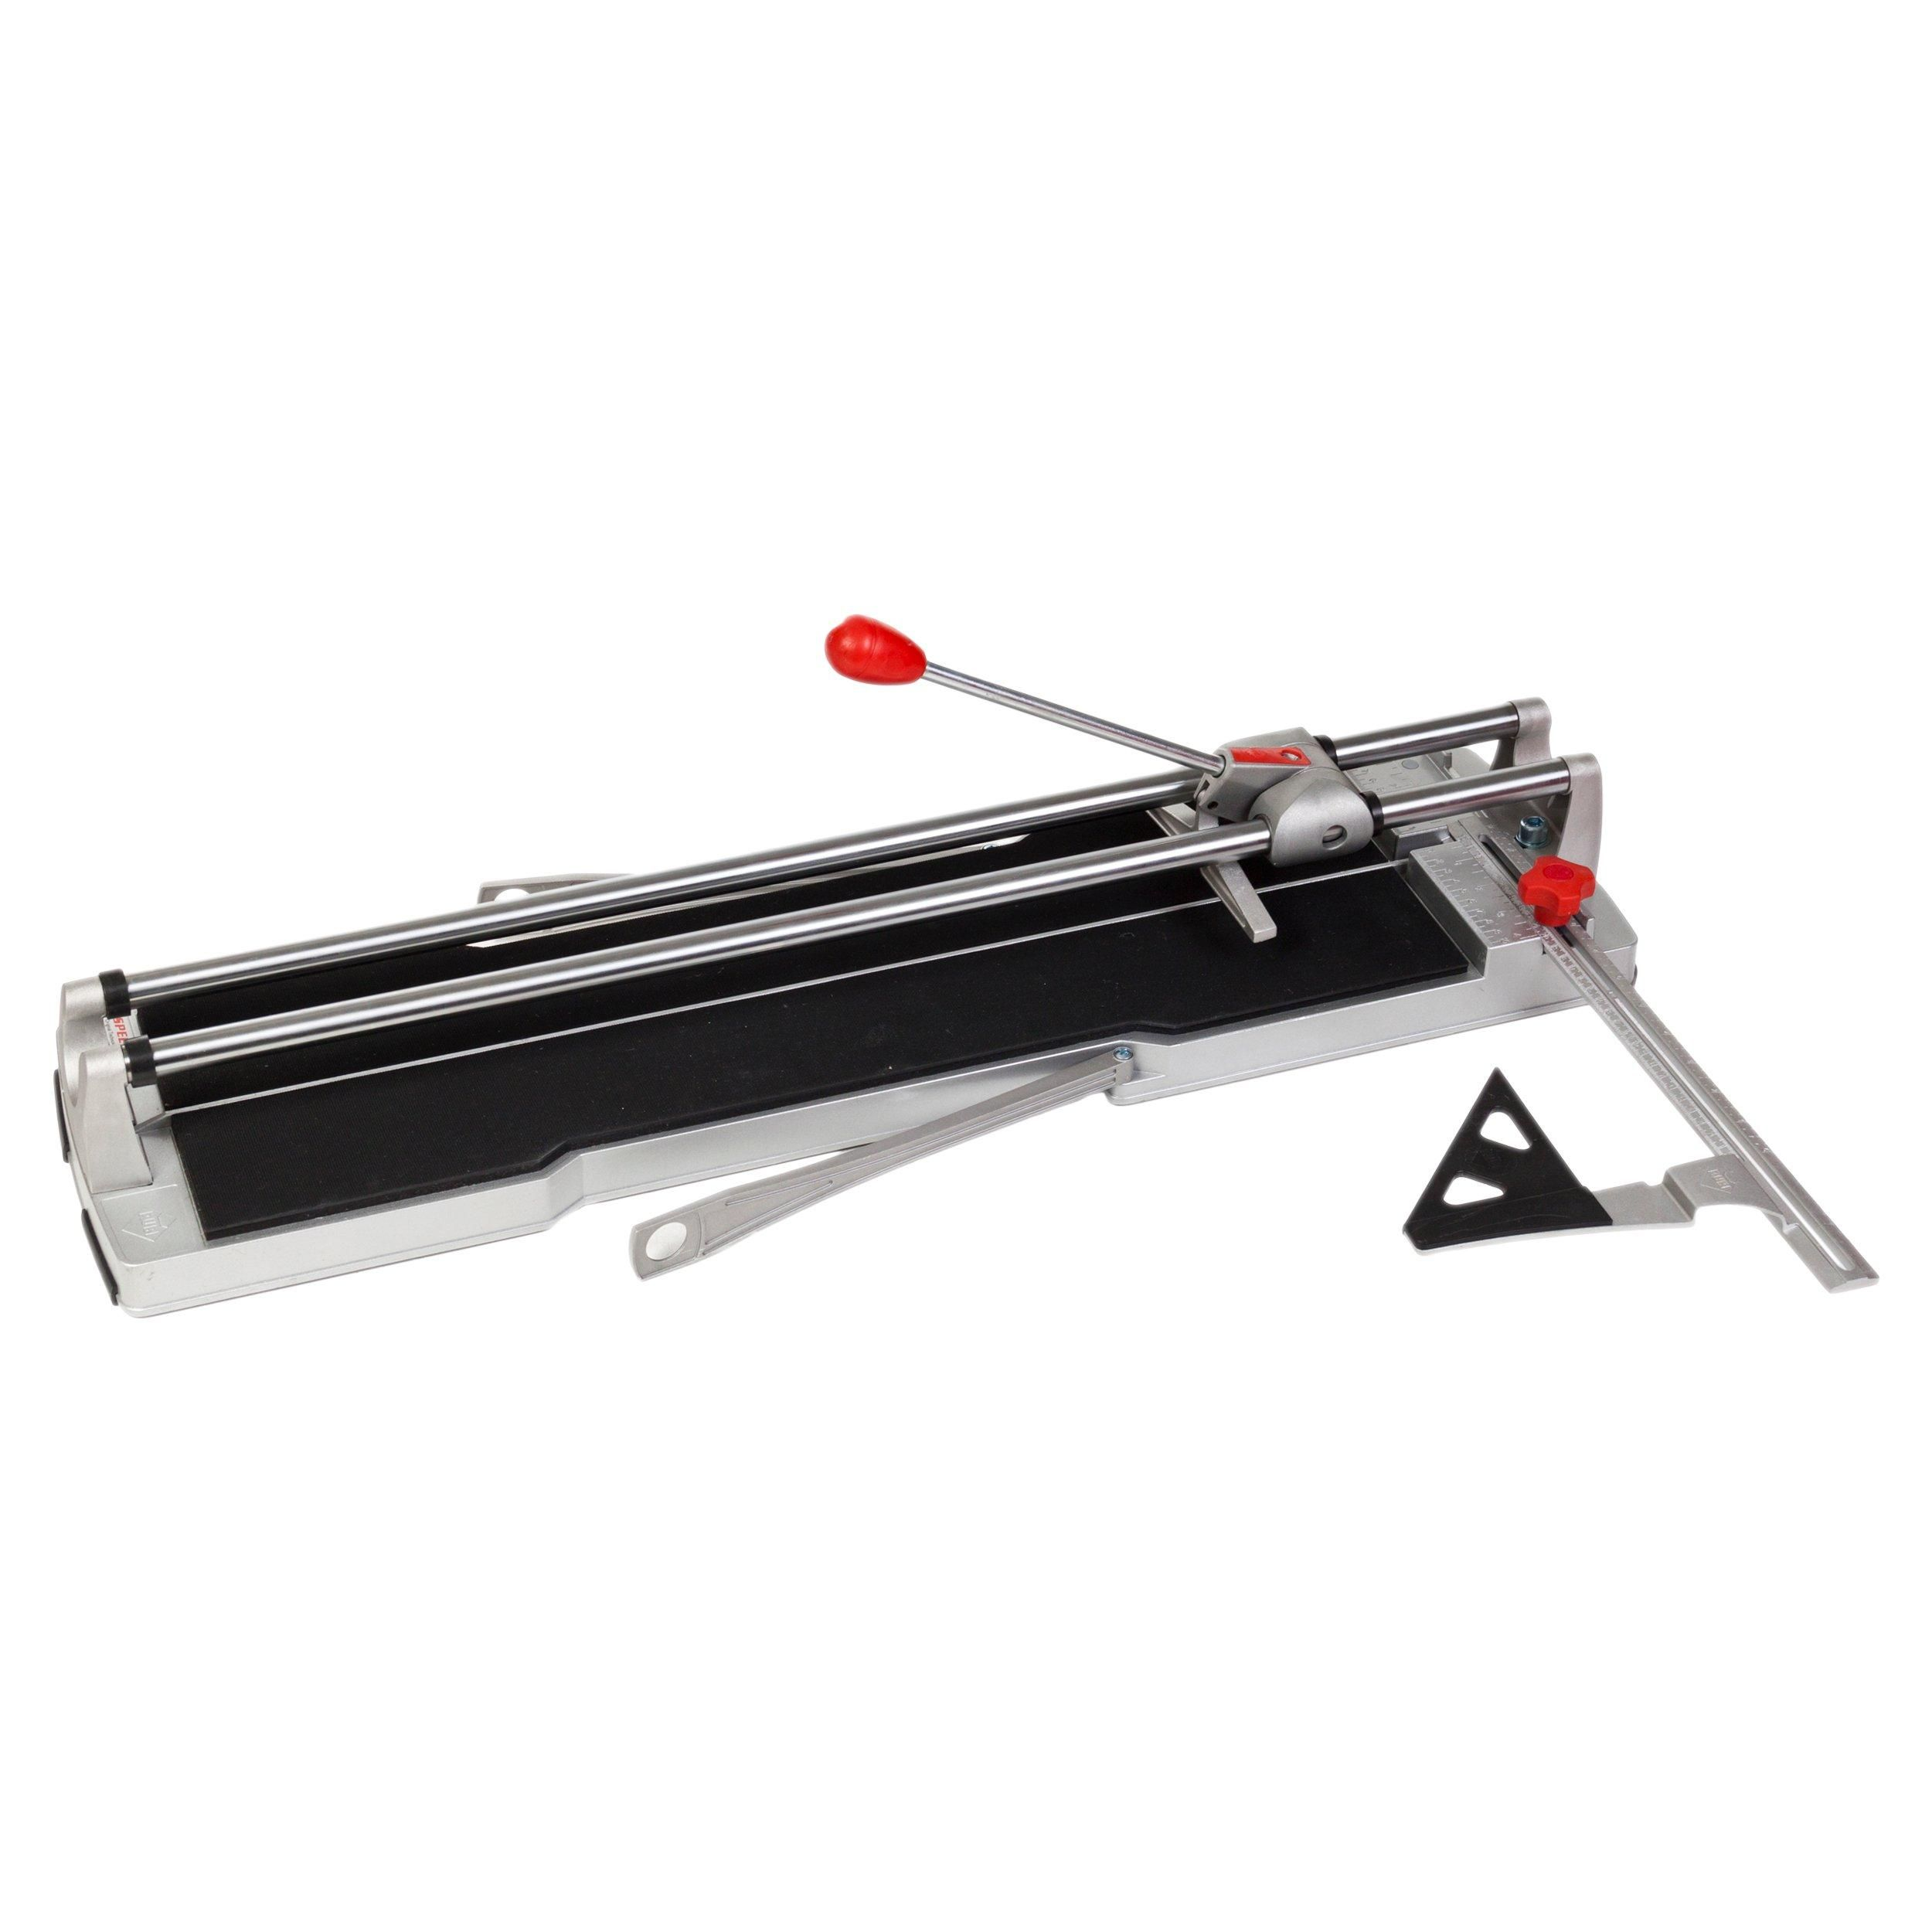 Rubi Speed 72 Hand Tile Cutter 28 Inch Floor Decor In 2020 Tile Cutter Tiles Floor Decor